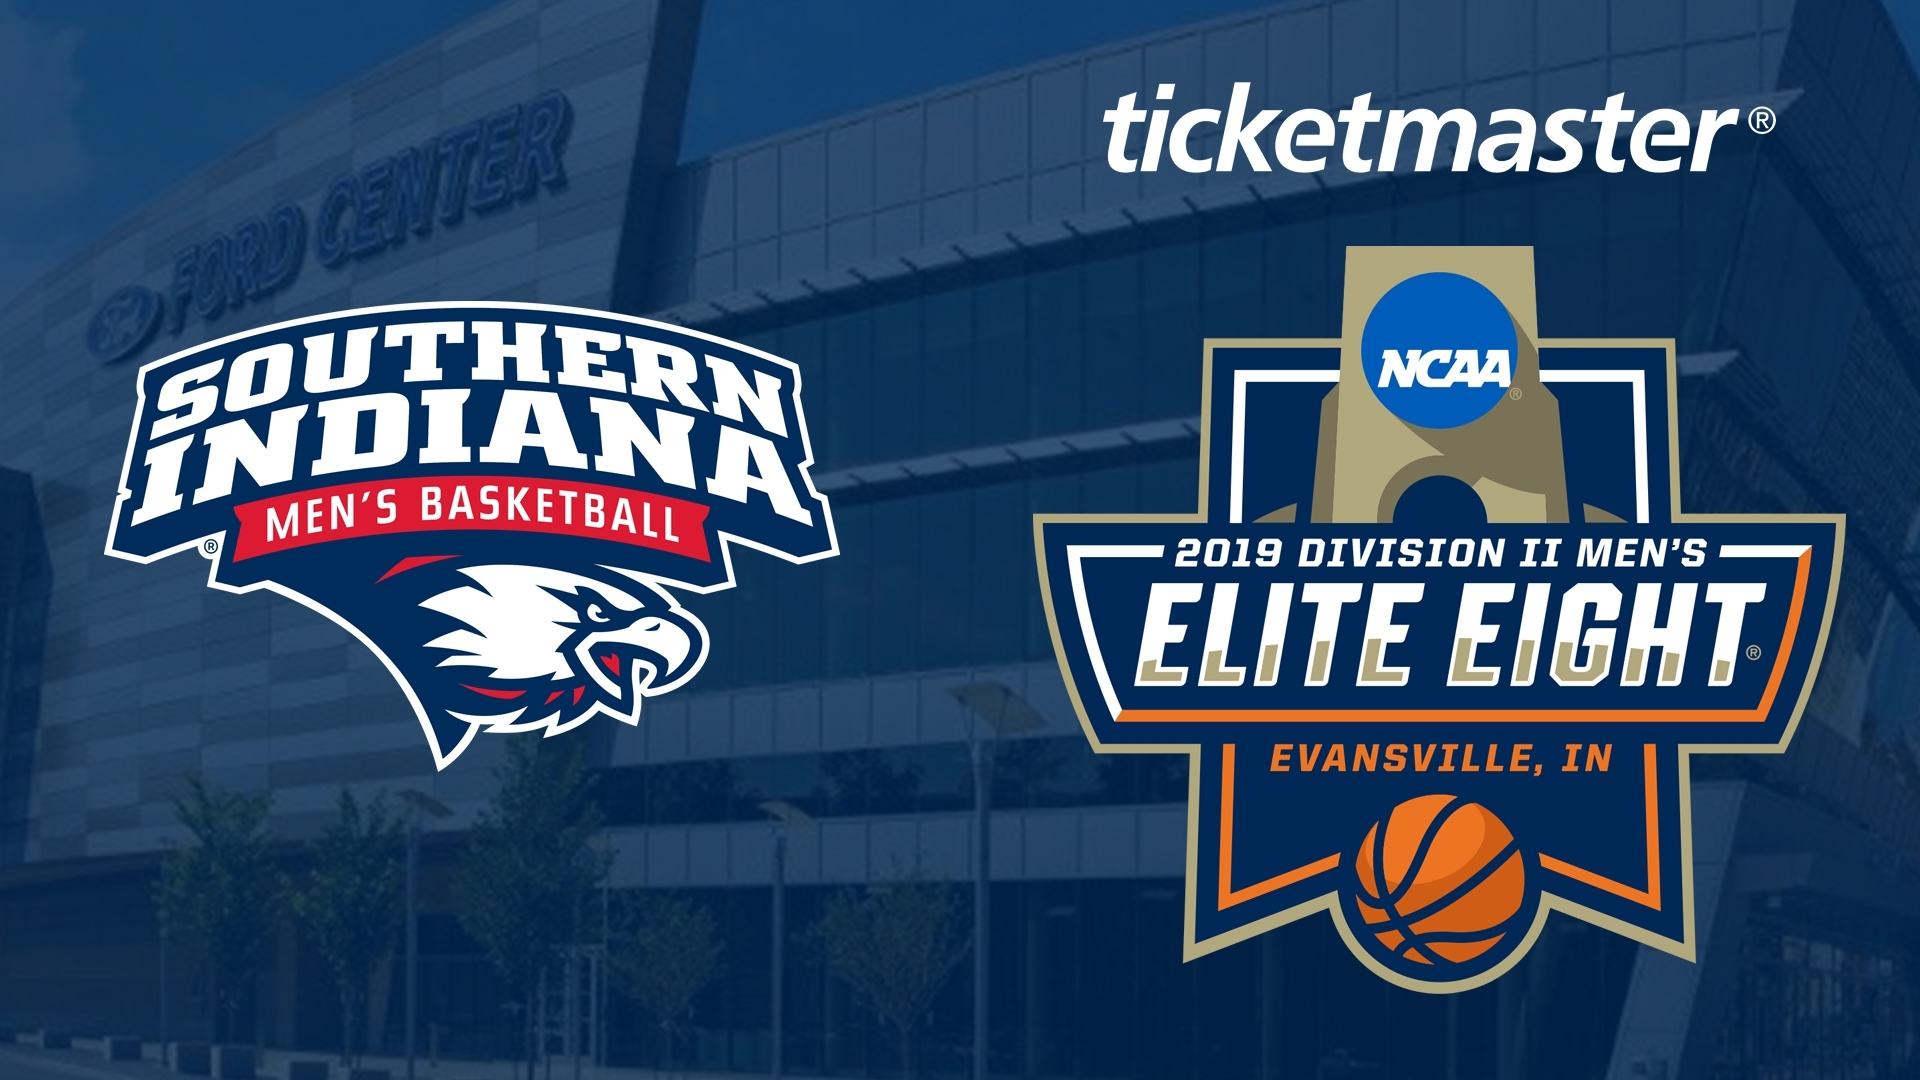 Elite Eight Tickets On Sale At Ticketmaster, Ford Center throughout Super Bowl 2019 Tickets Ticketmaster